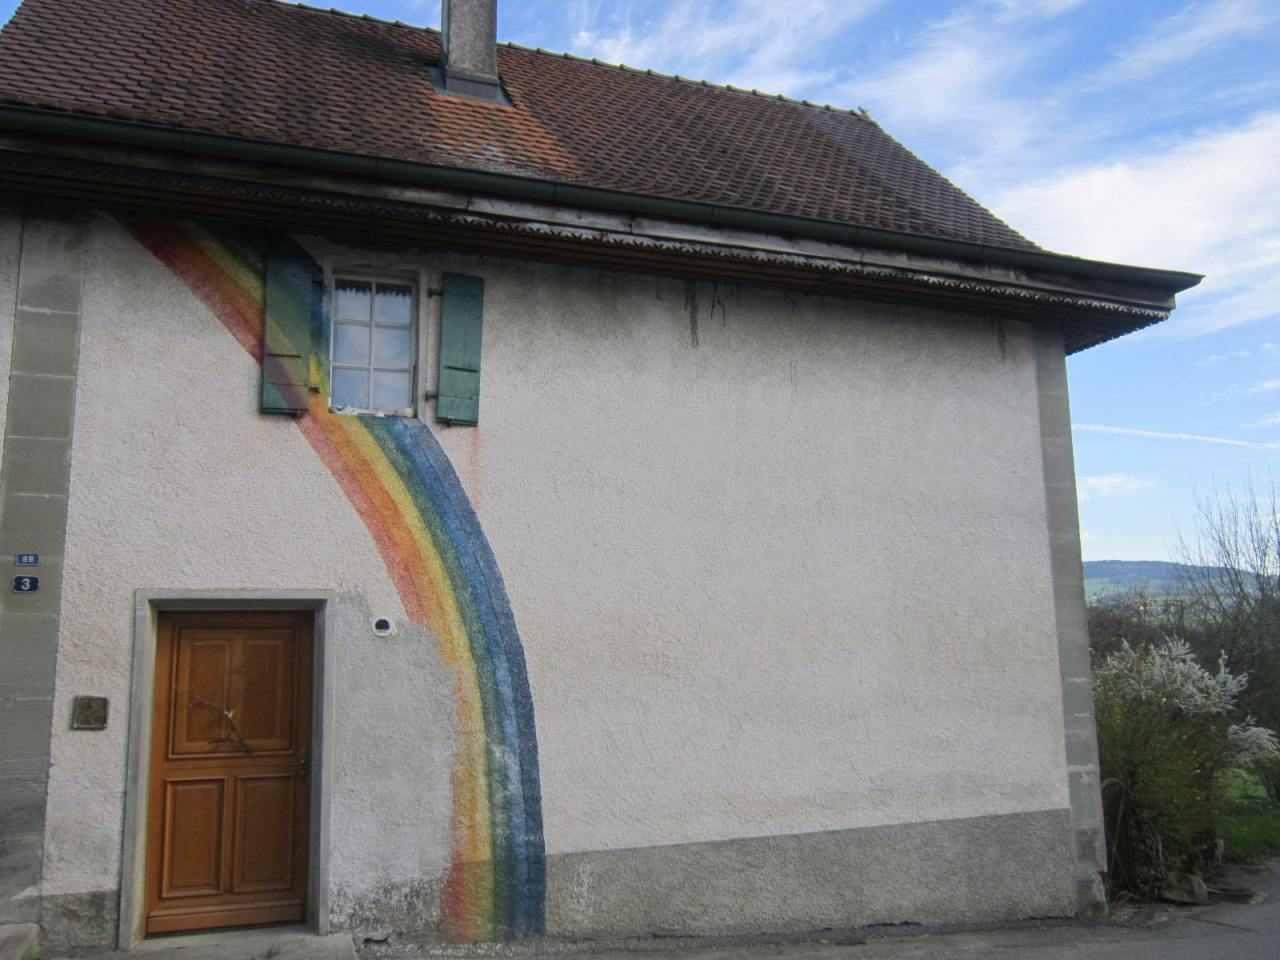 Rainbow house on the Jakobsweg Suisse (between Fribourg andMoudon)